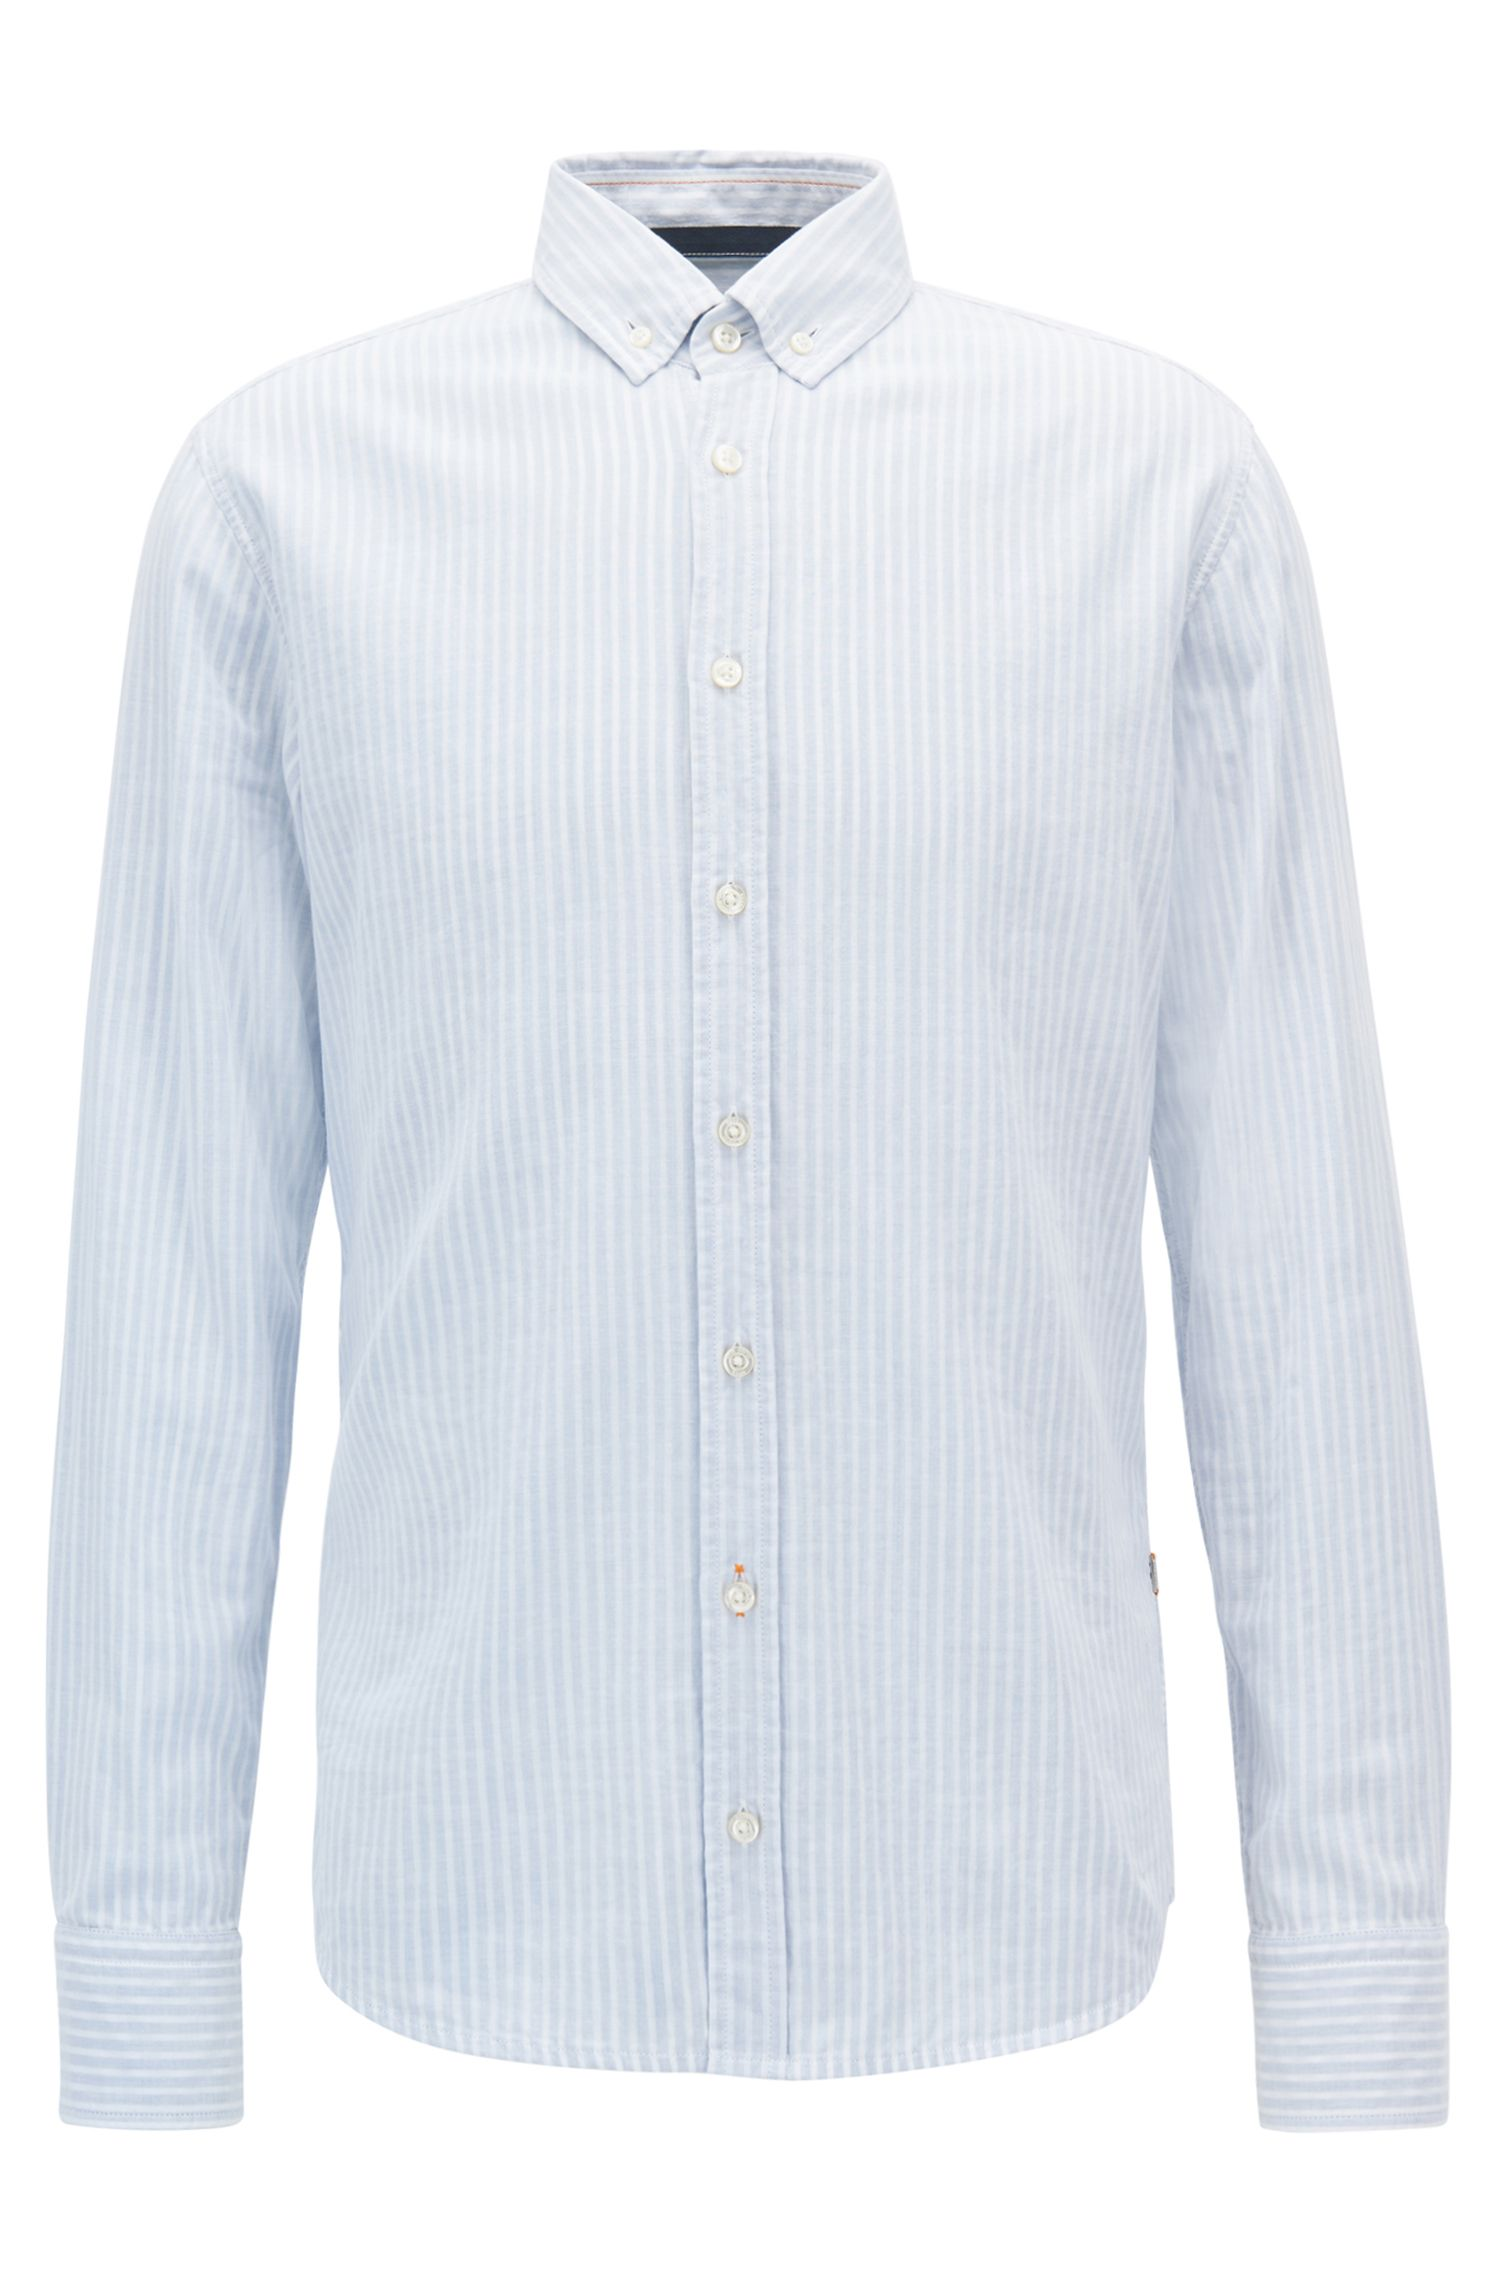 Cotton Sport Shirt, Slim Fit | Epreppy